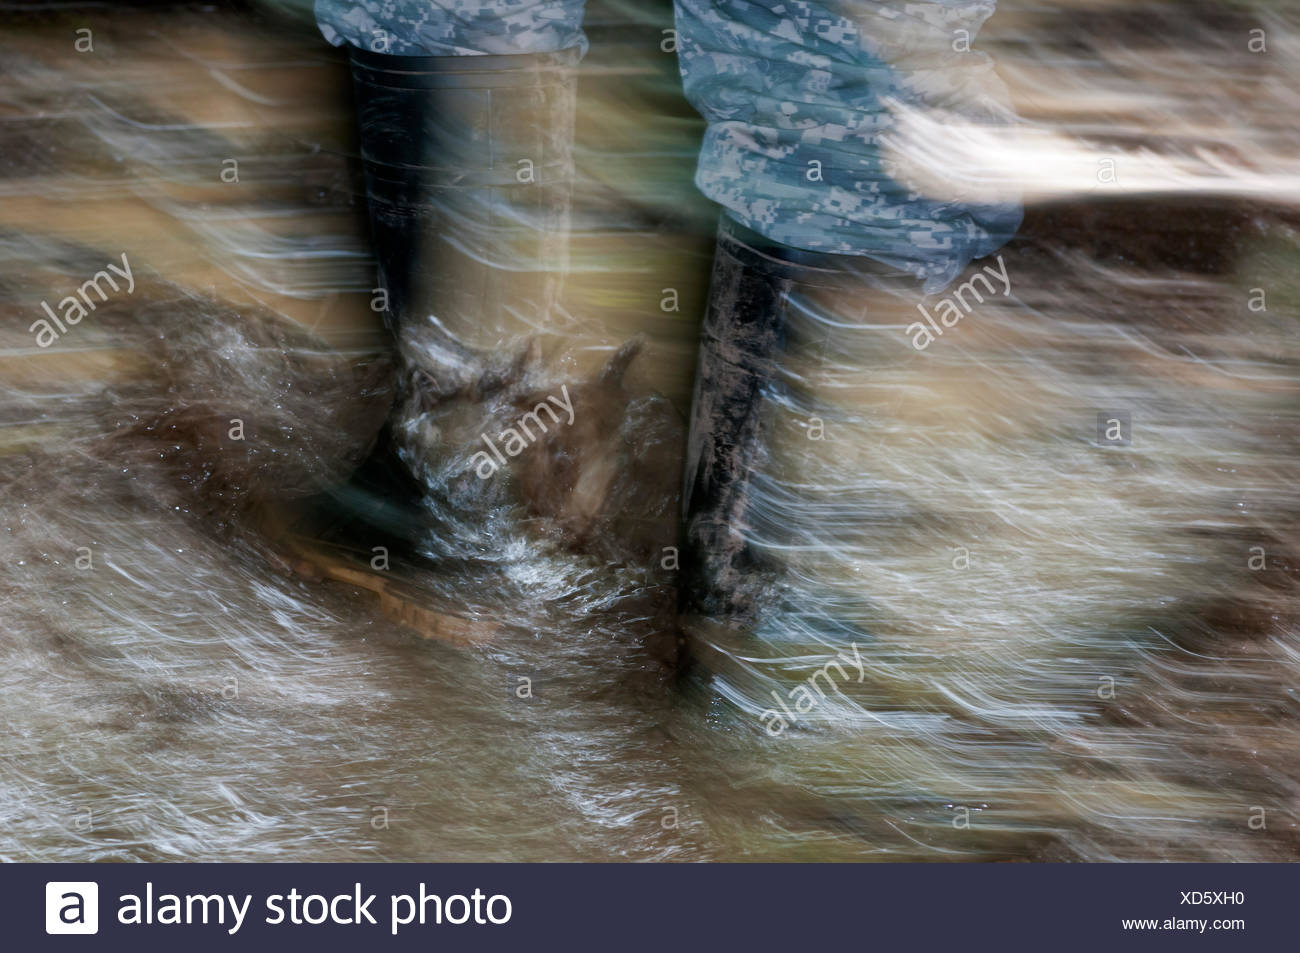 Walking with rubber boots in muddy terrain, Tambopata Nature Reserve, Madre de Dios Region, Peru - Stock Image